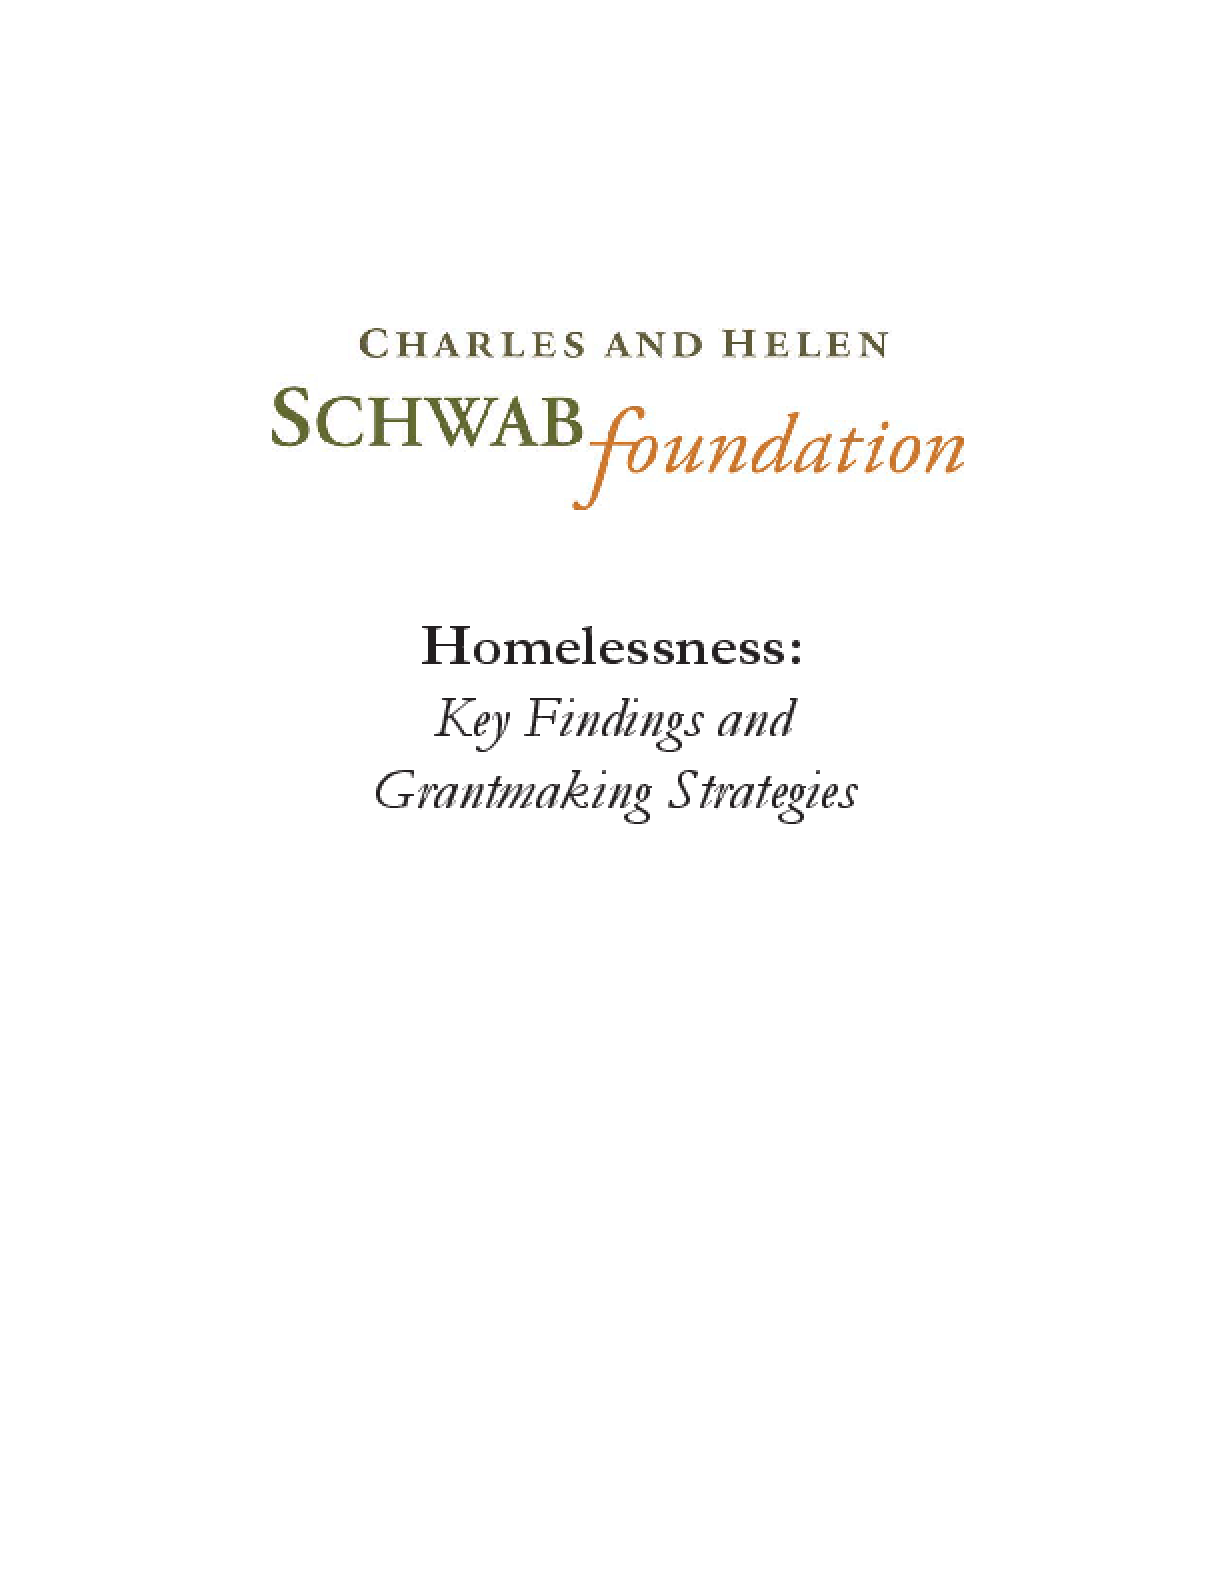 Homelessness: Key Findings and Grantmaking Strategies